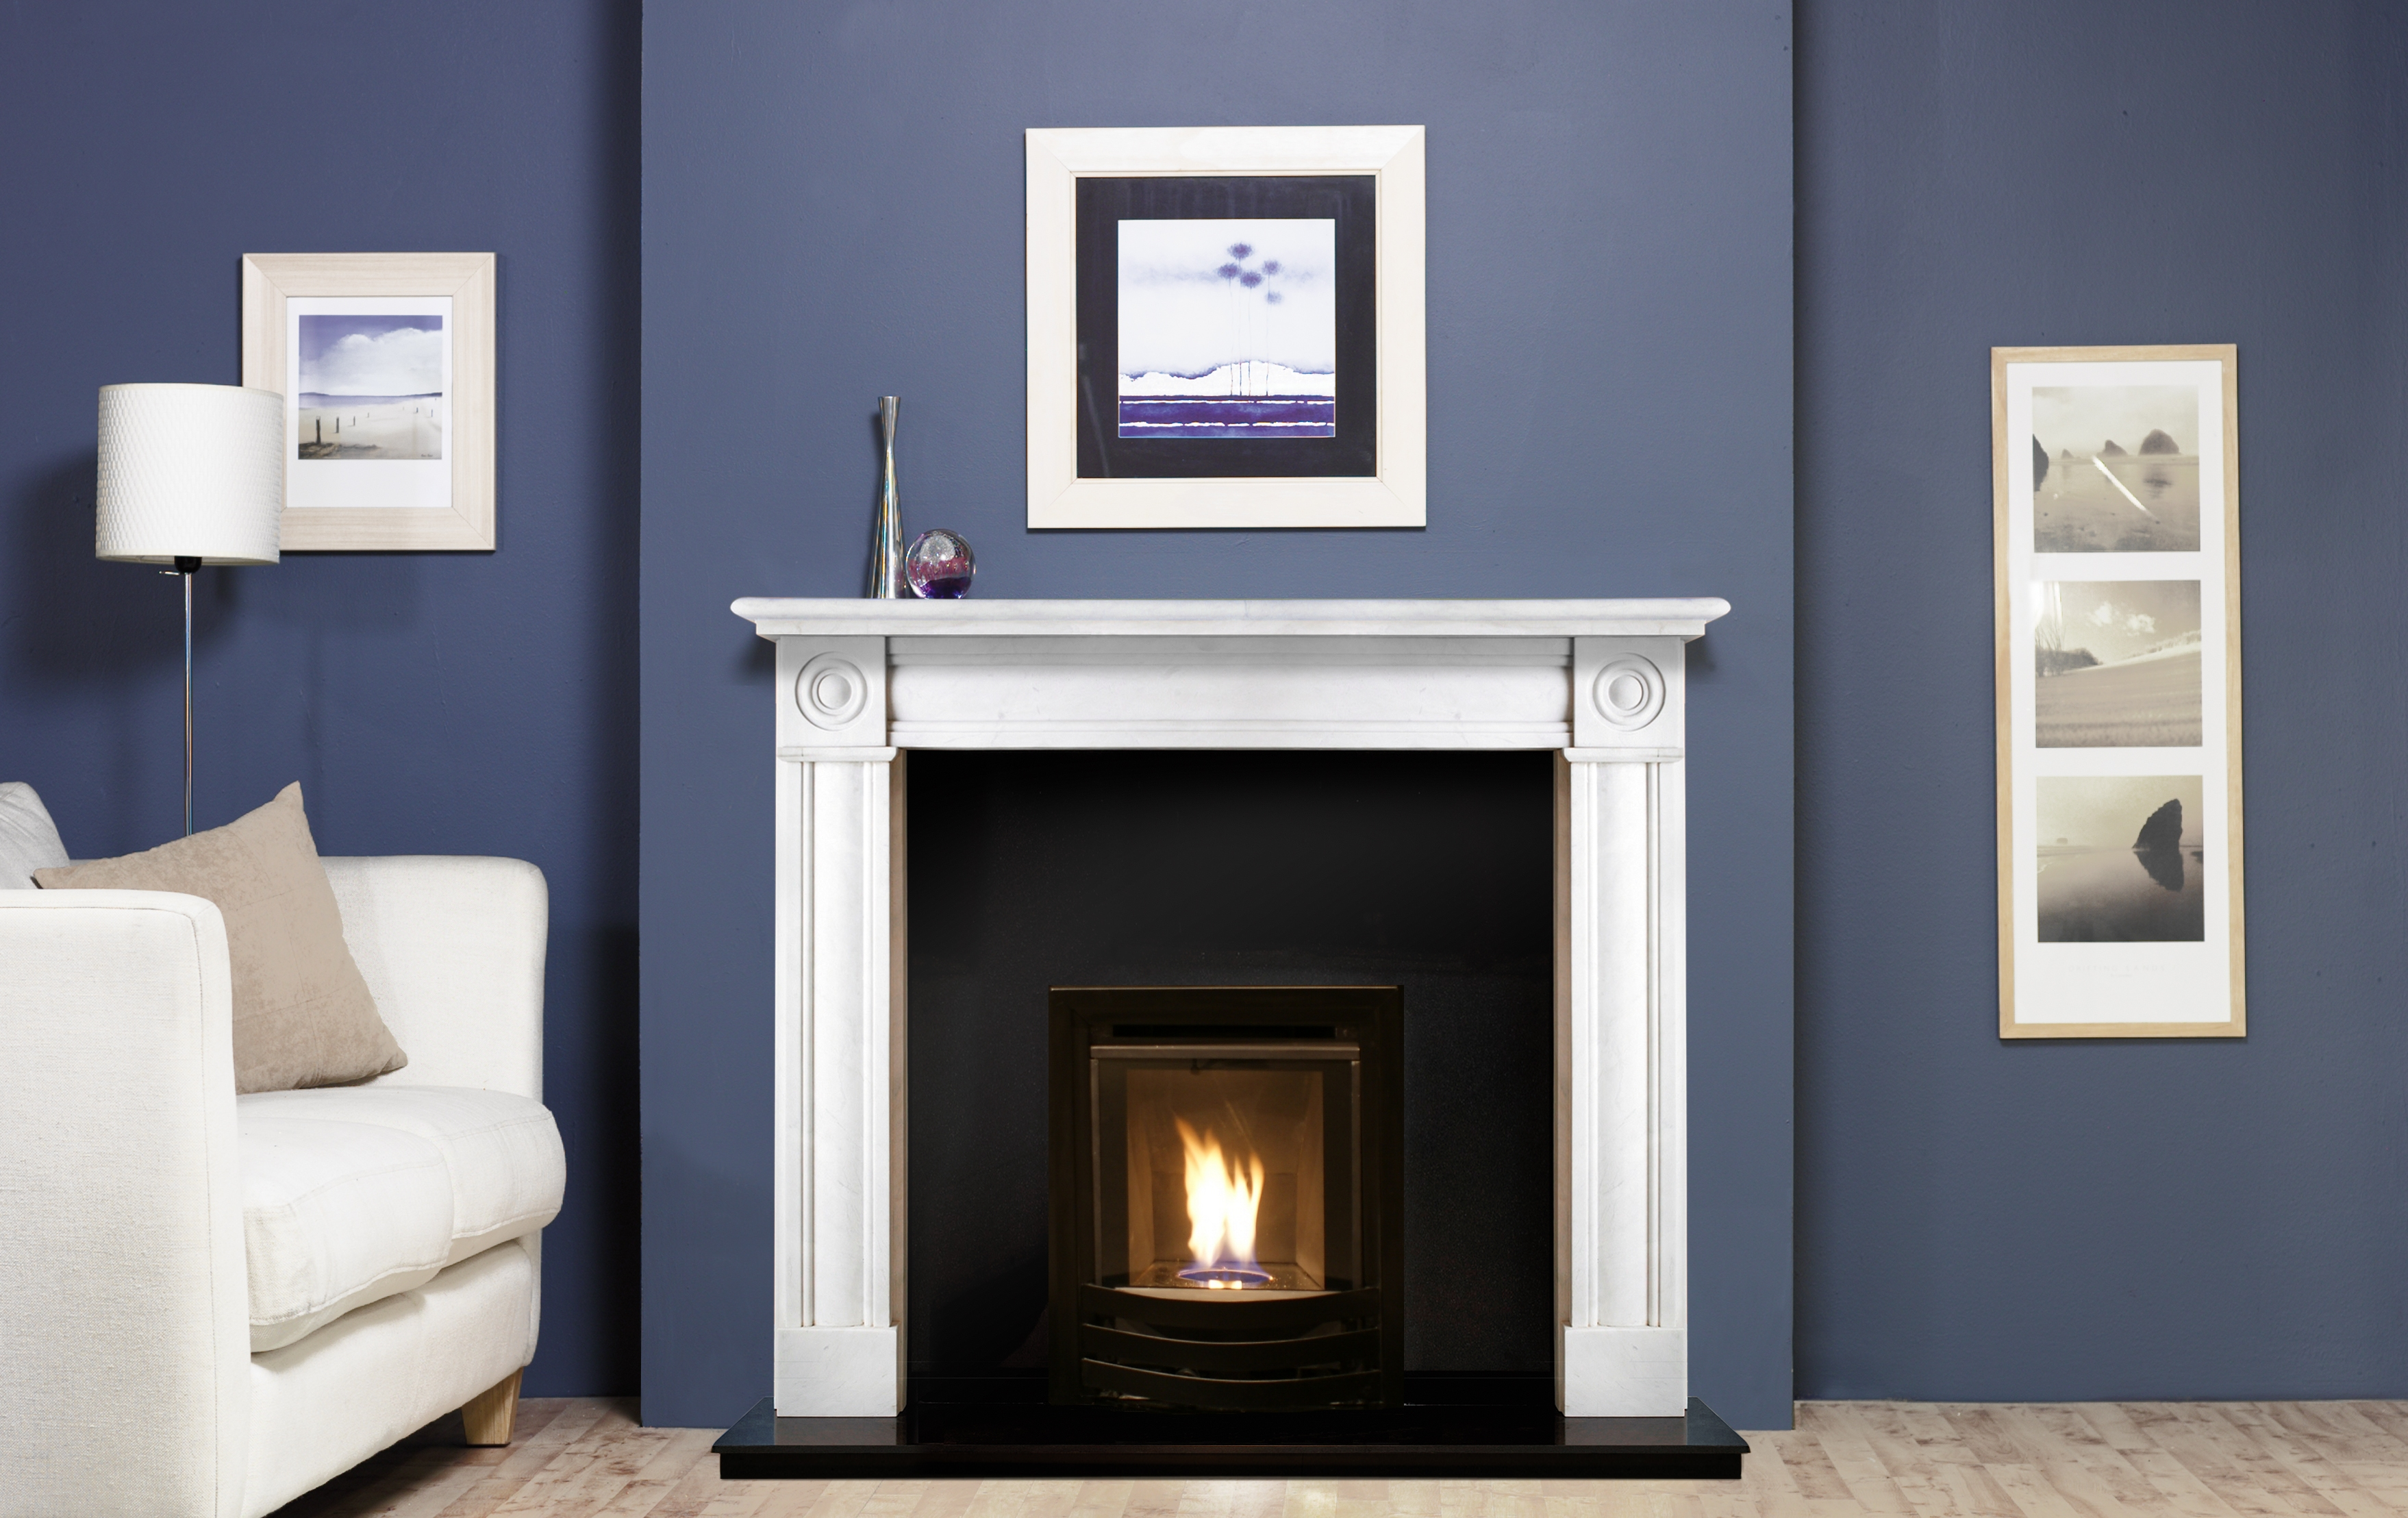 Glamour High Efficiency Inset Gas Fire Image